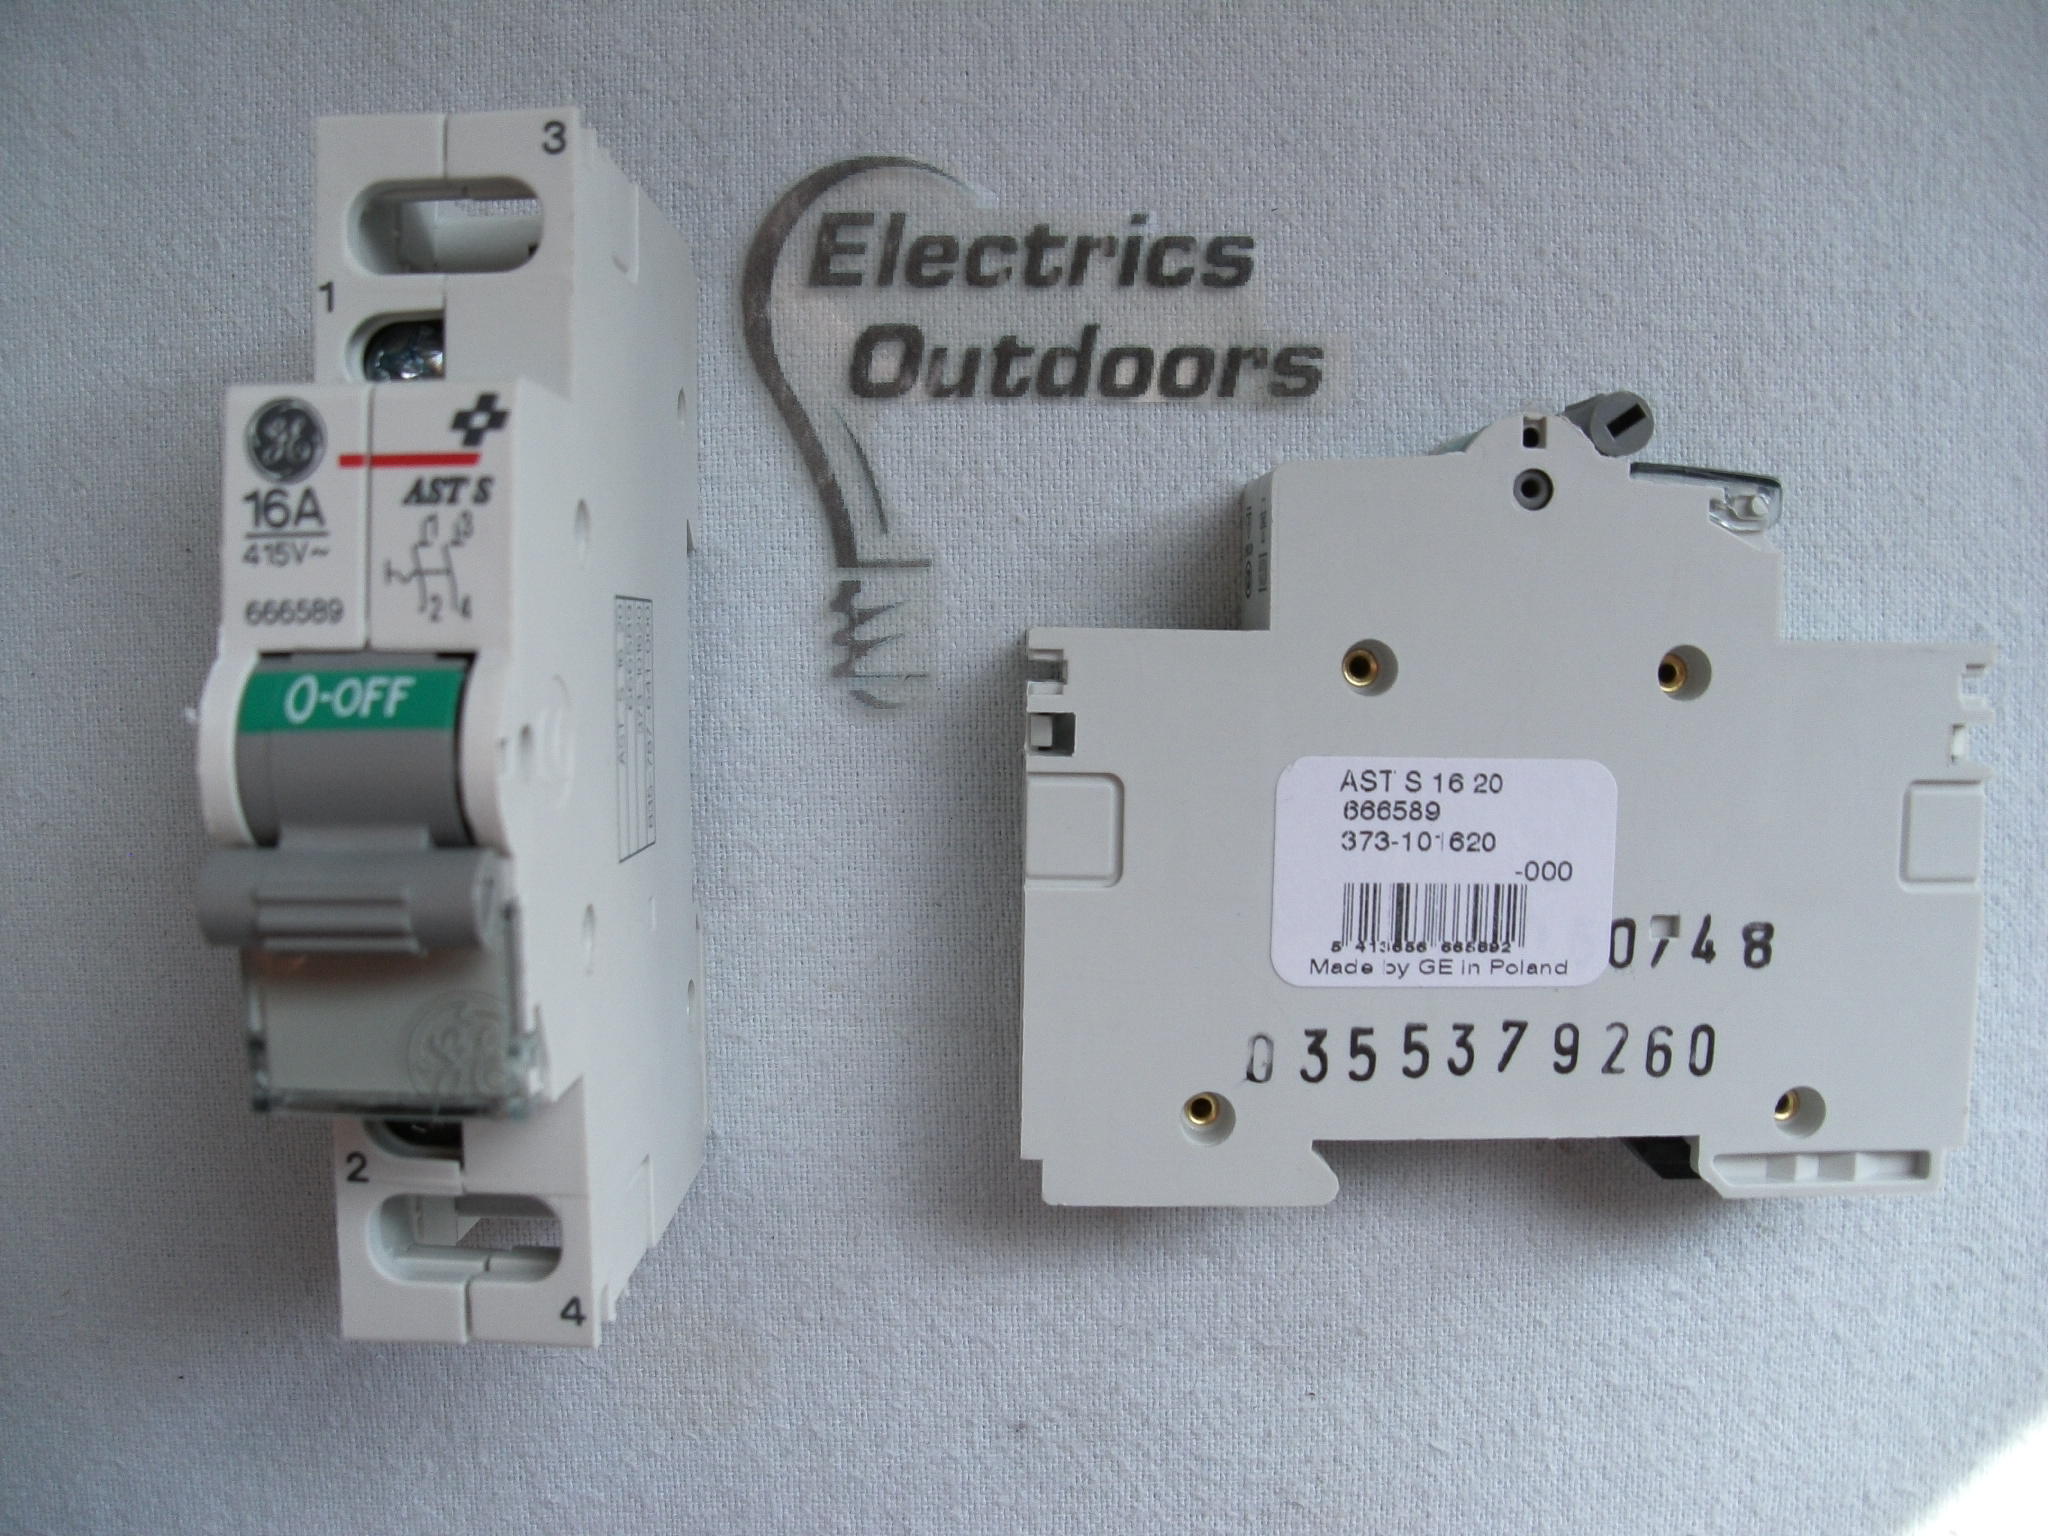 GENERAL ELECTRIC 16 AMP DOUBLE POLE MODULAR SWITCH ASTER AST S 16 20 666589